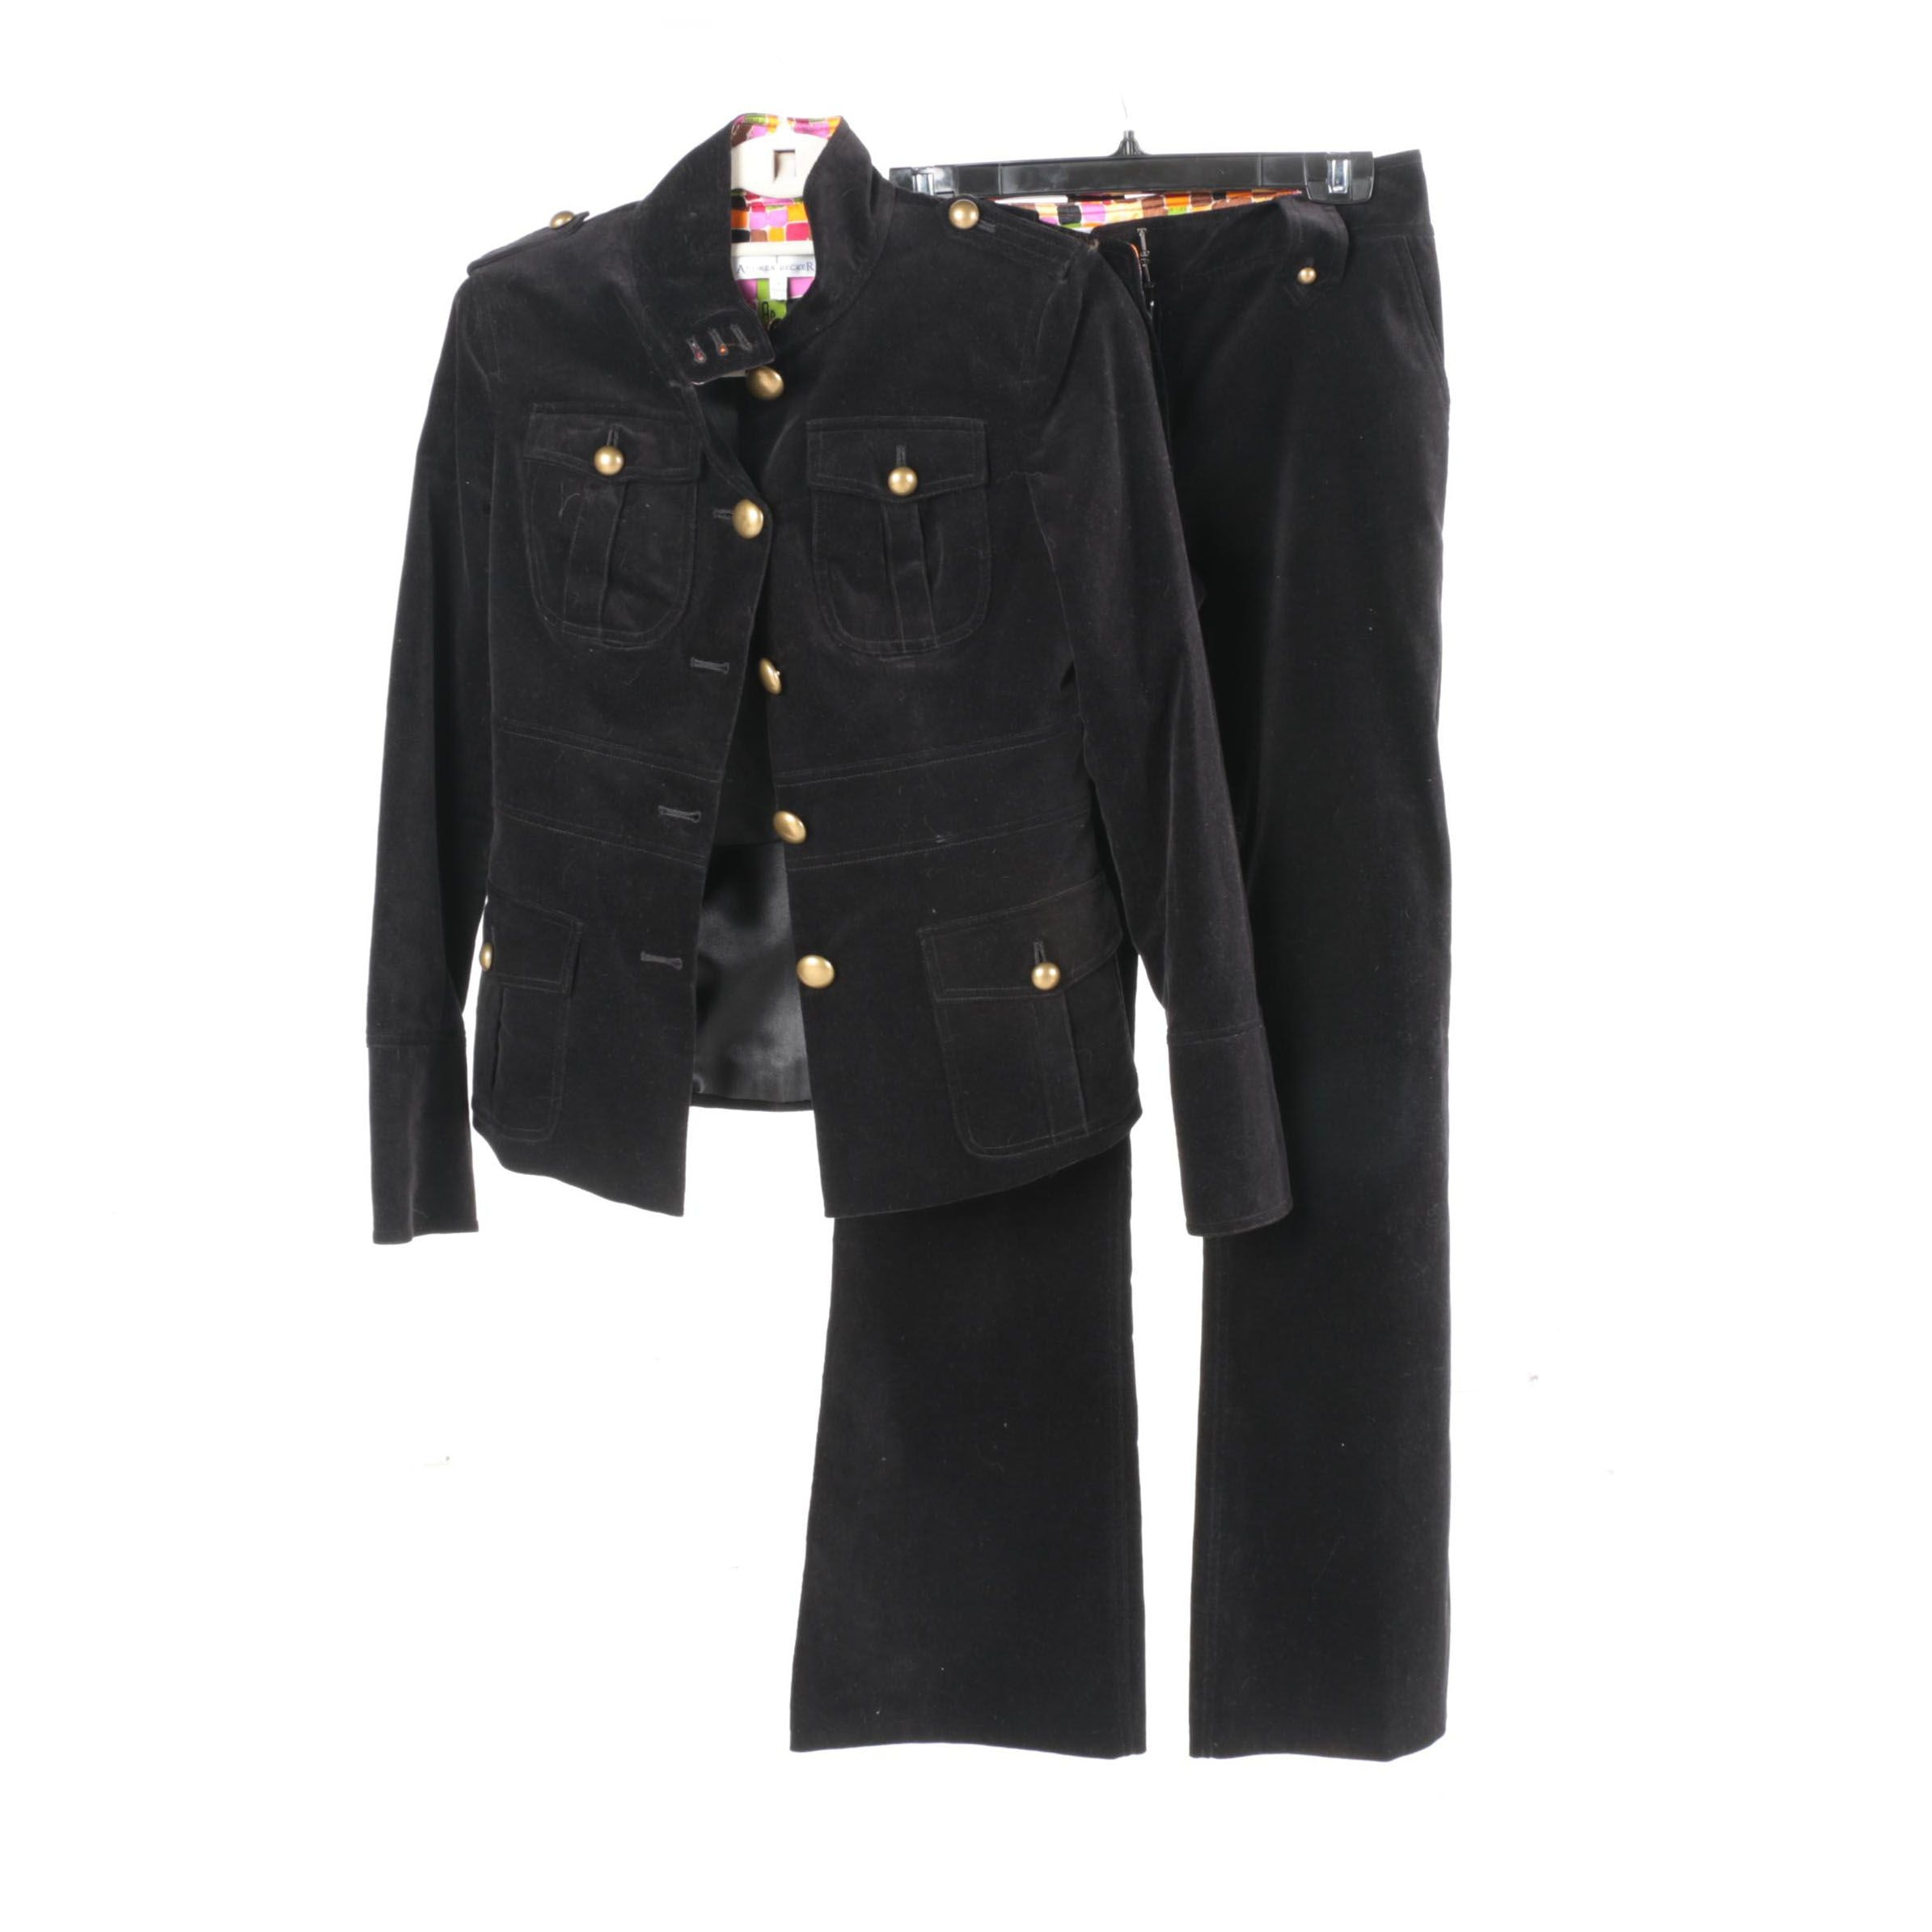 Women's Andrea Becker Black Jacket and Pants